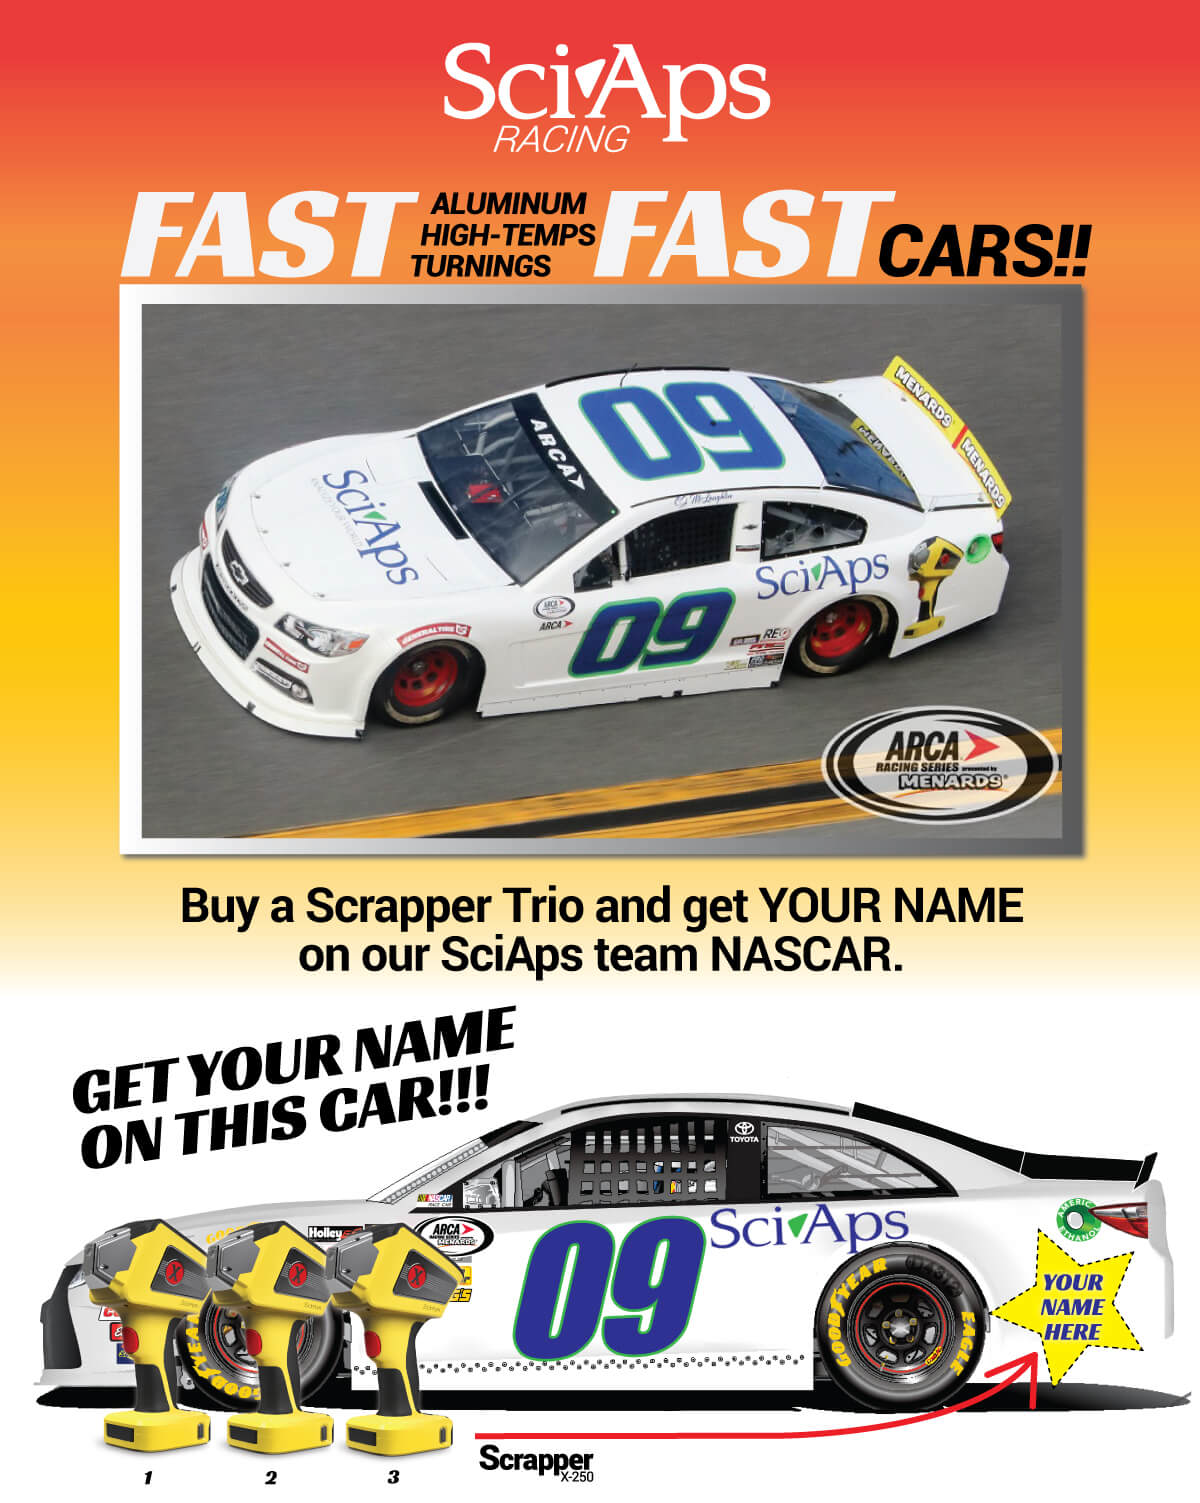 Buy a Scrapper Trio and get your name on our SciAps team NASCAR.